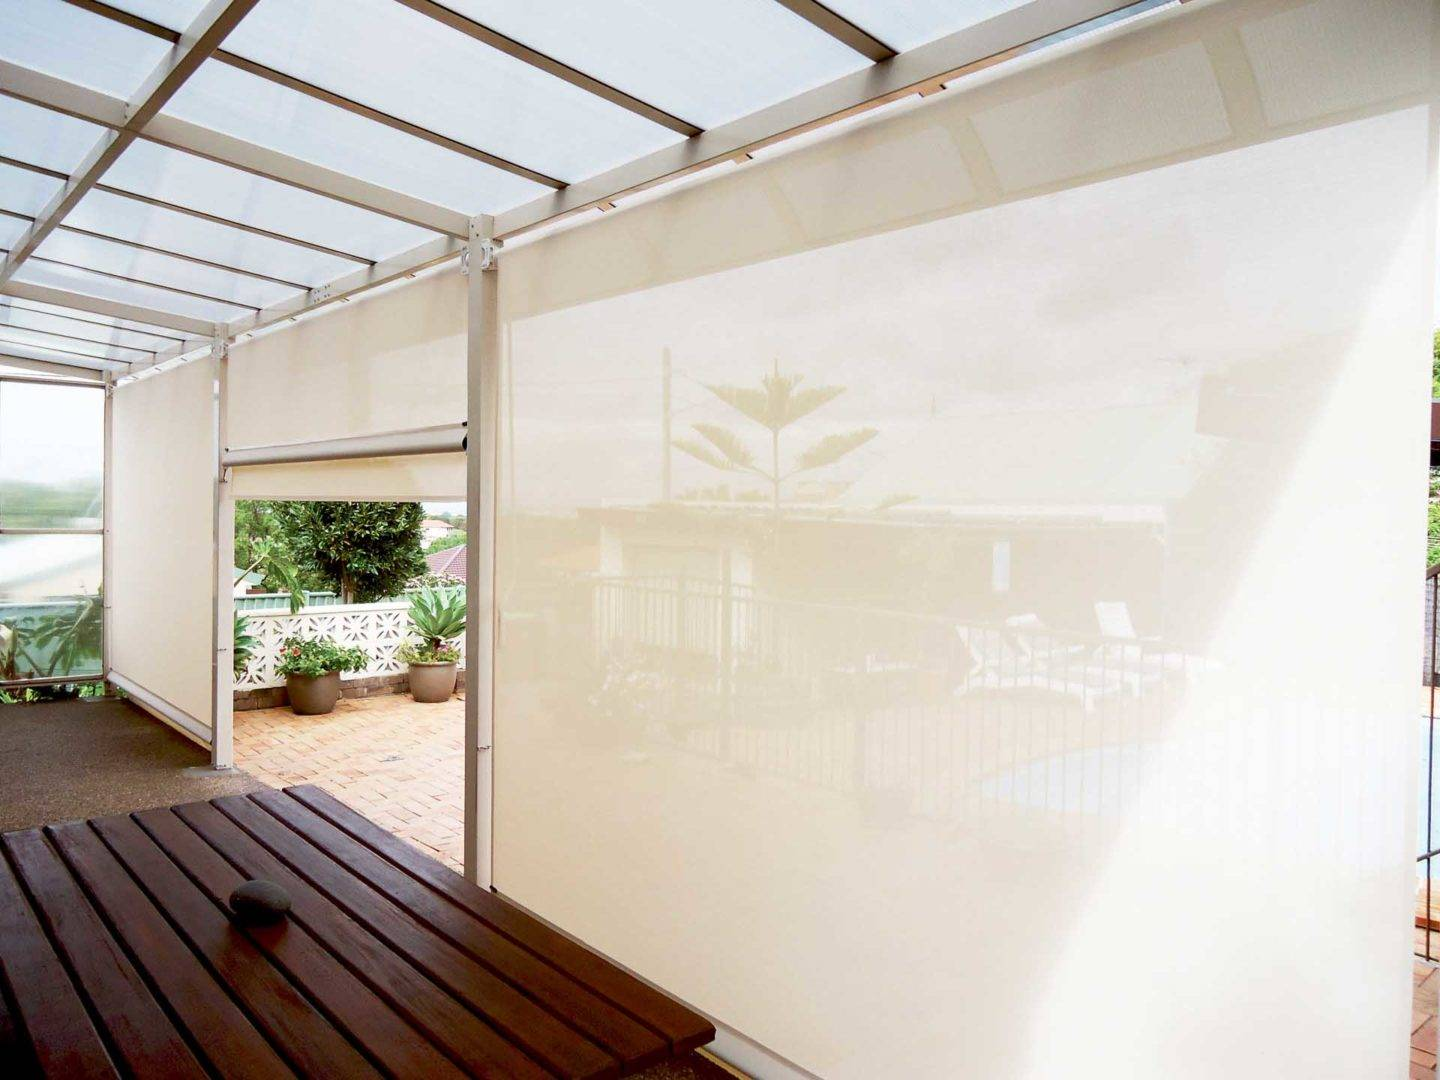 Introducing Our New Range of Outdoor Blinds – Opaque Blinds - Quality material and design, Australian Outdoor Living.